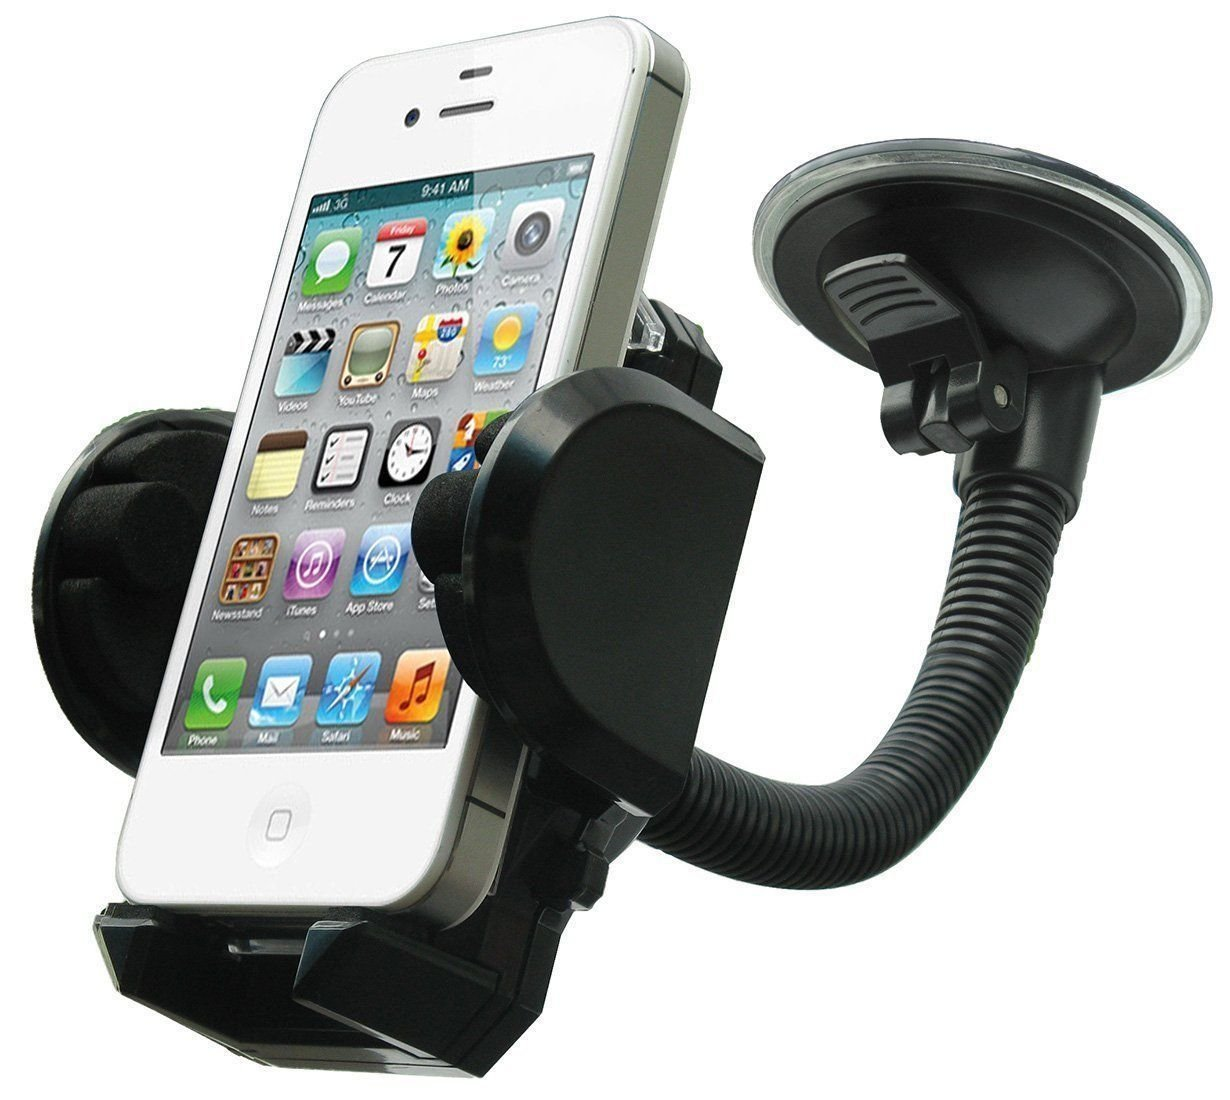 M.E.R.A. Cell Phone Holder, 360° Car Windshield Mount Holder Bracket Cradle For GPS iPhone X 8 7 7Plus 6 6Plus 5S 5 5C Samsung Galaxy S7 Edge 6S Smartphones, 360° Rotation Windshield Dashboard Cradle.